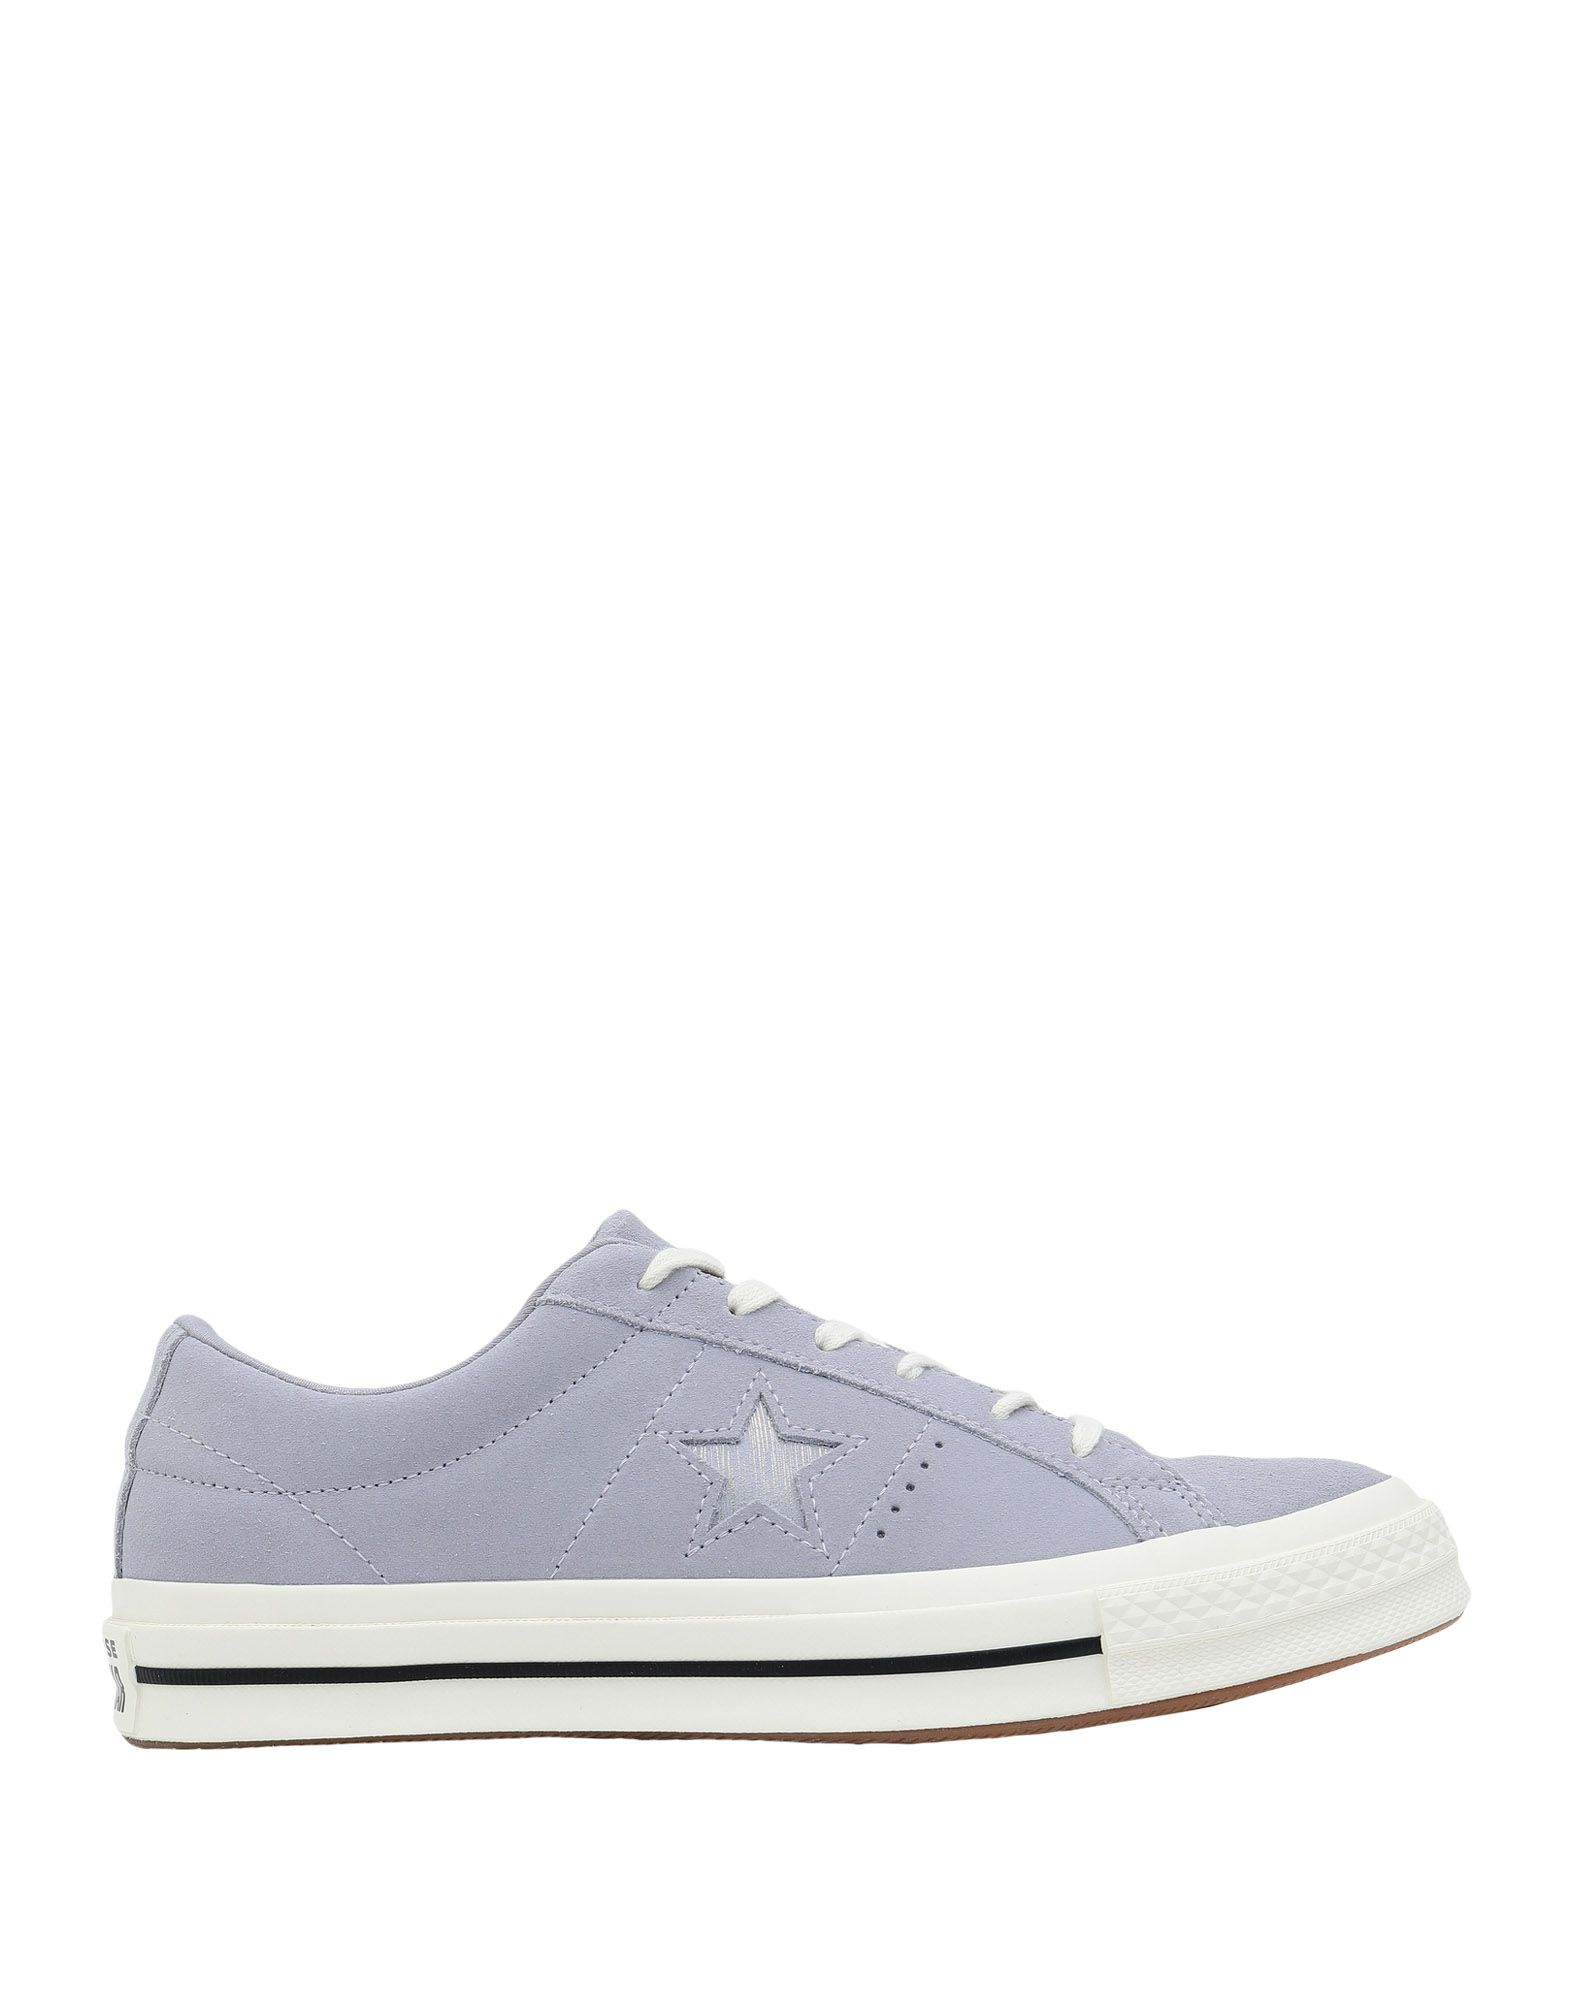 Converse All Star One Star Ox - Sneakers Star - Women Converse All Star Sneakers Sneakers online on  United Kingdom - 11574639VL a5a840